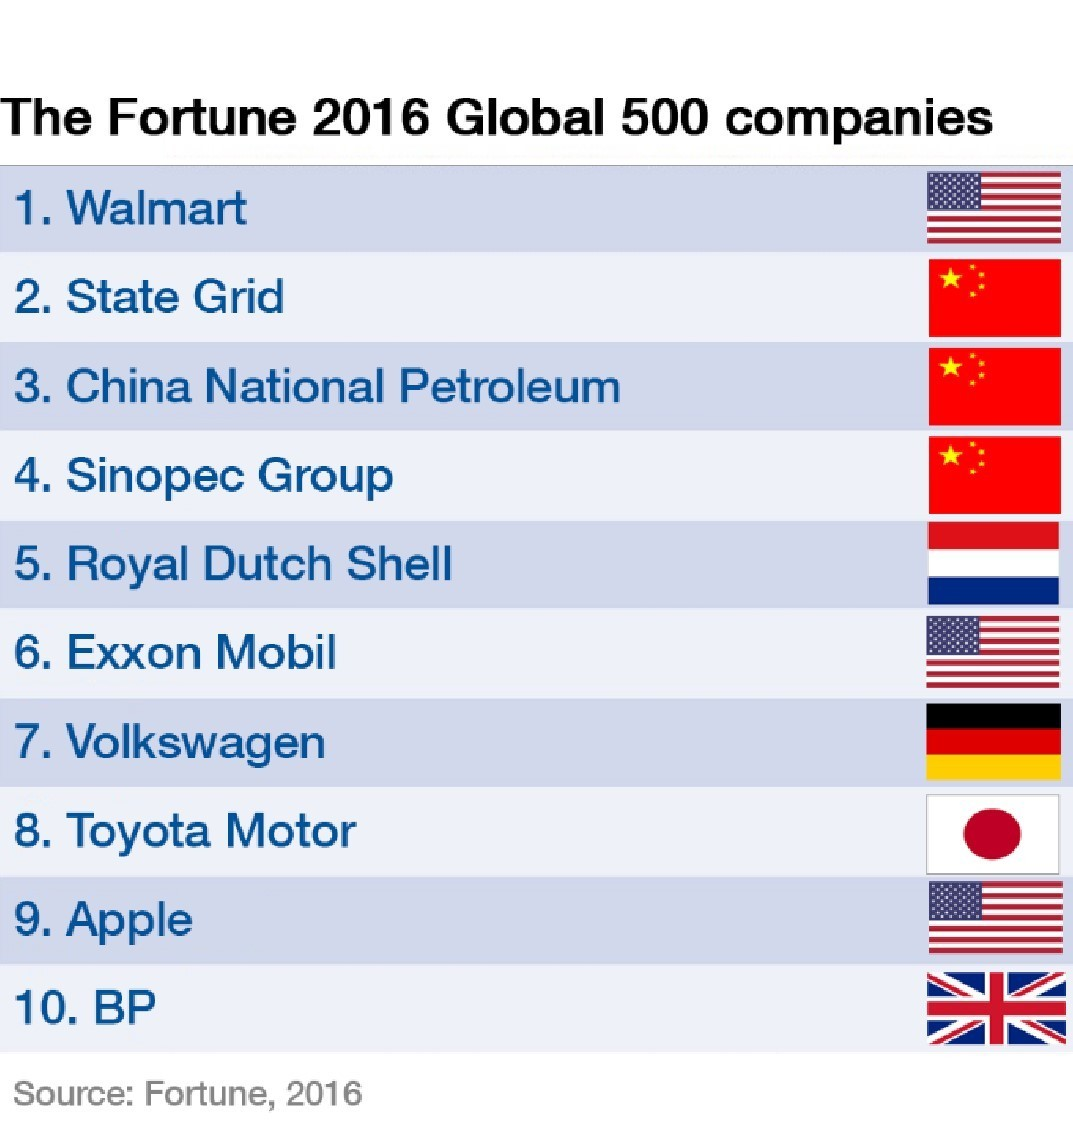 The fortune 2016 global 500 companies